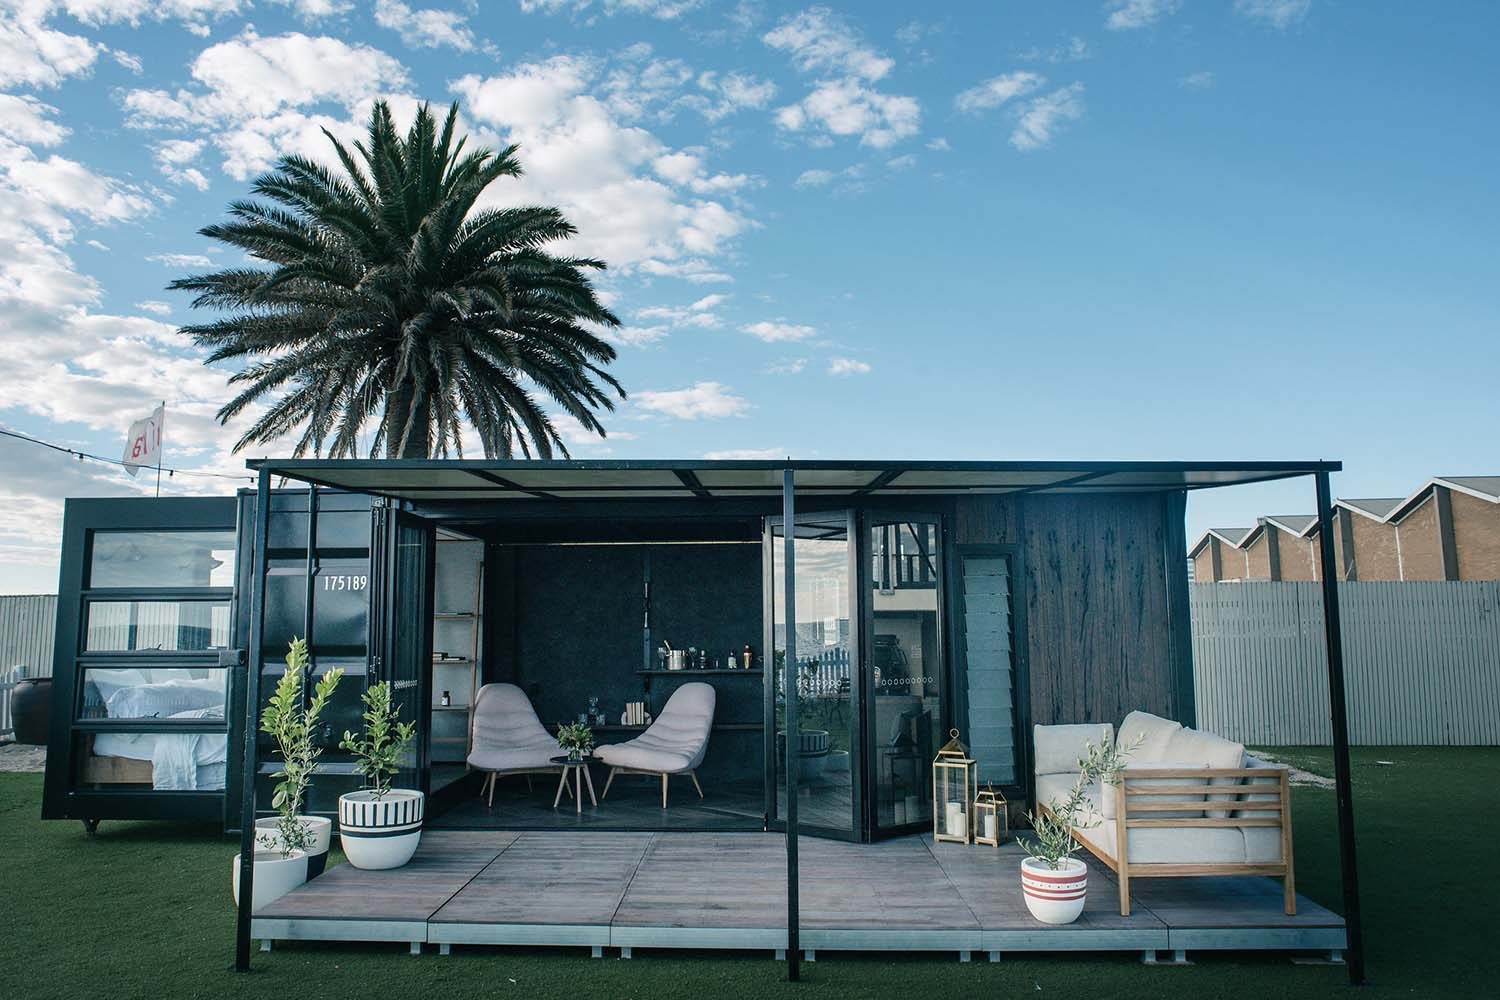 Tiny Home Designs: 5 Examples Of Micro Homes For Today's Housing Demands